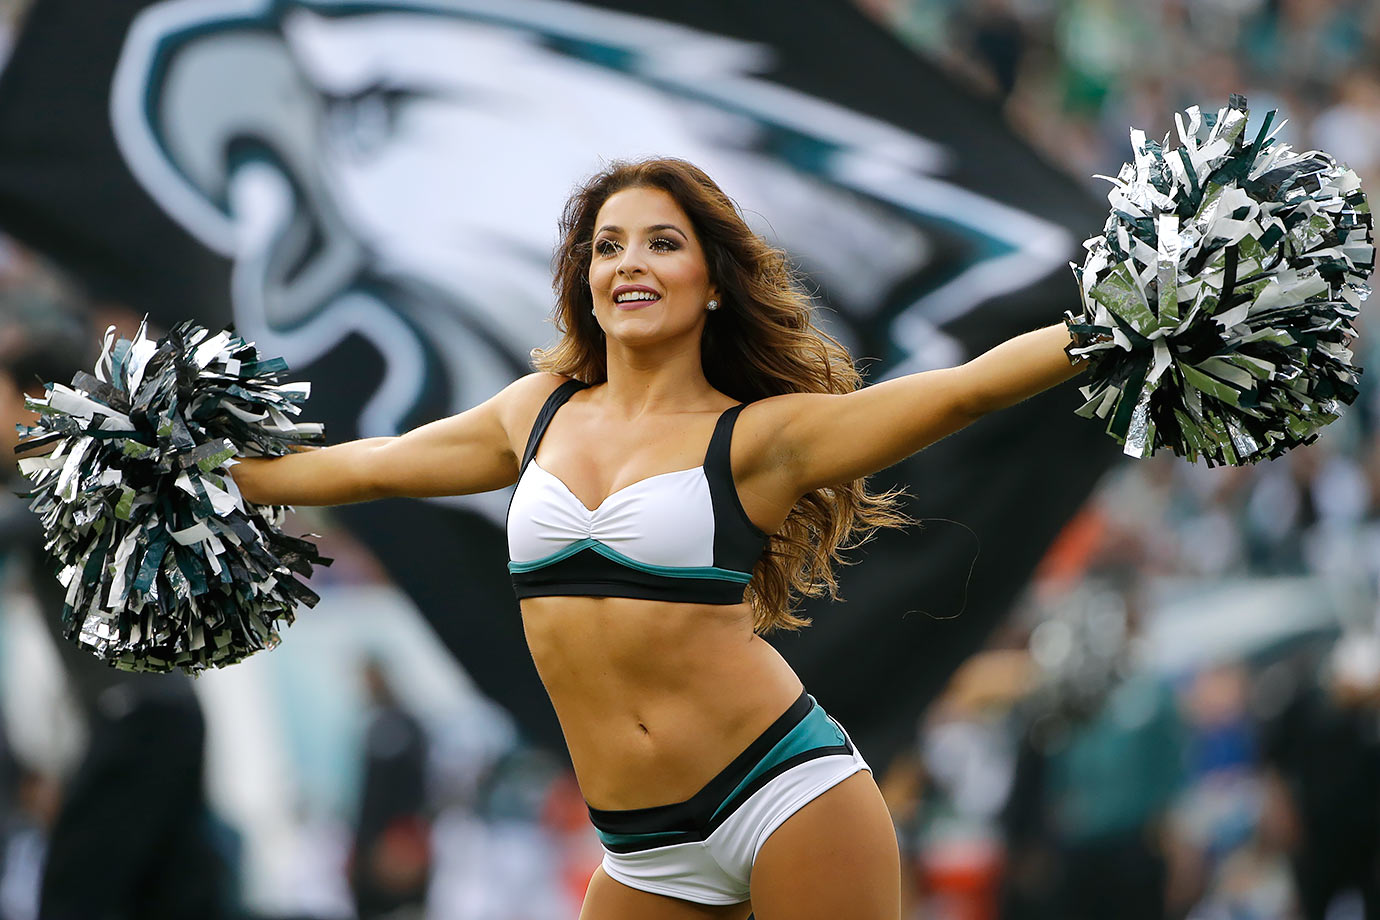 Philadelphia Eagles Cheerleaders - Mature Content Alert